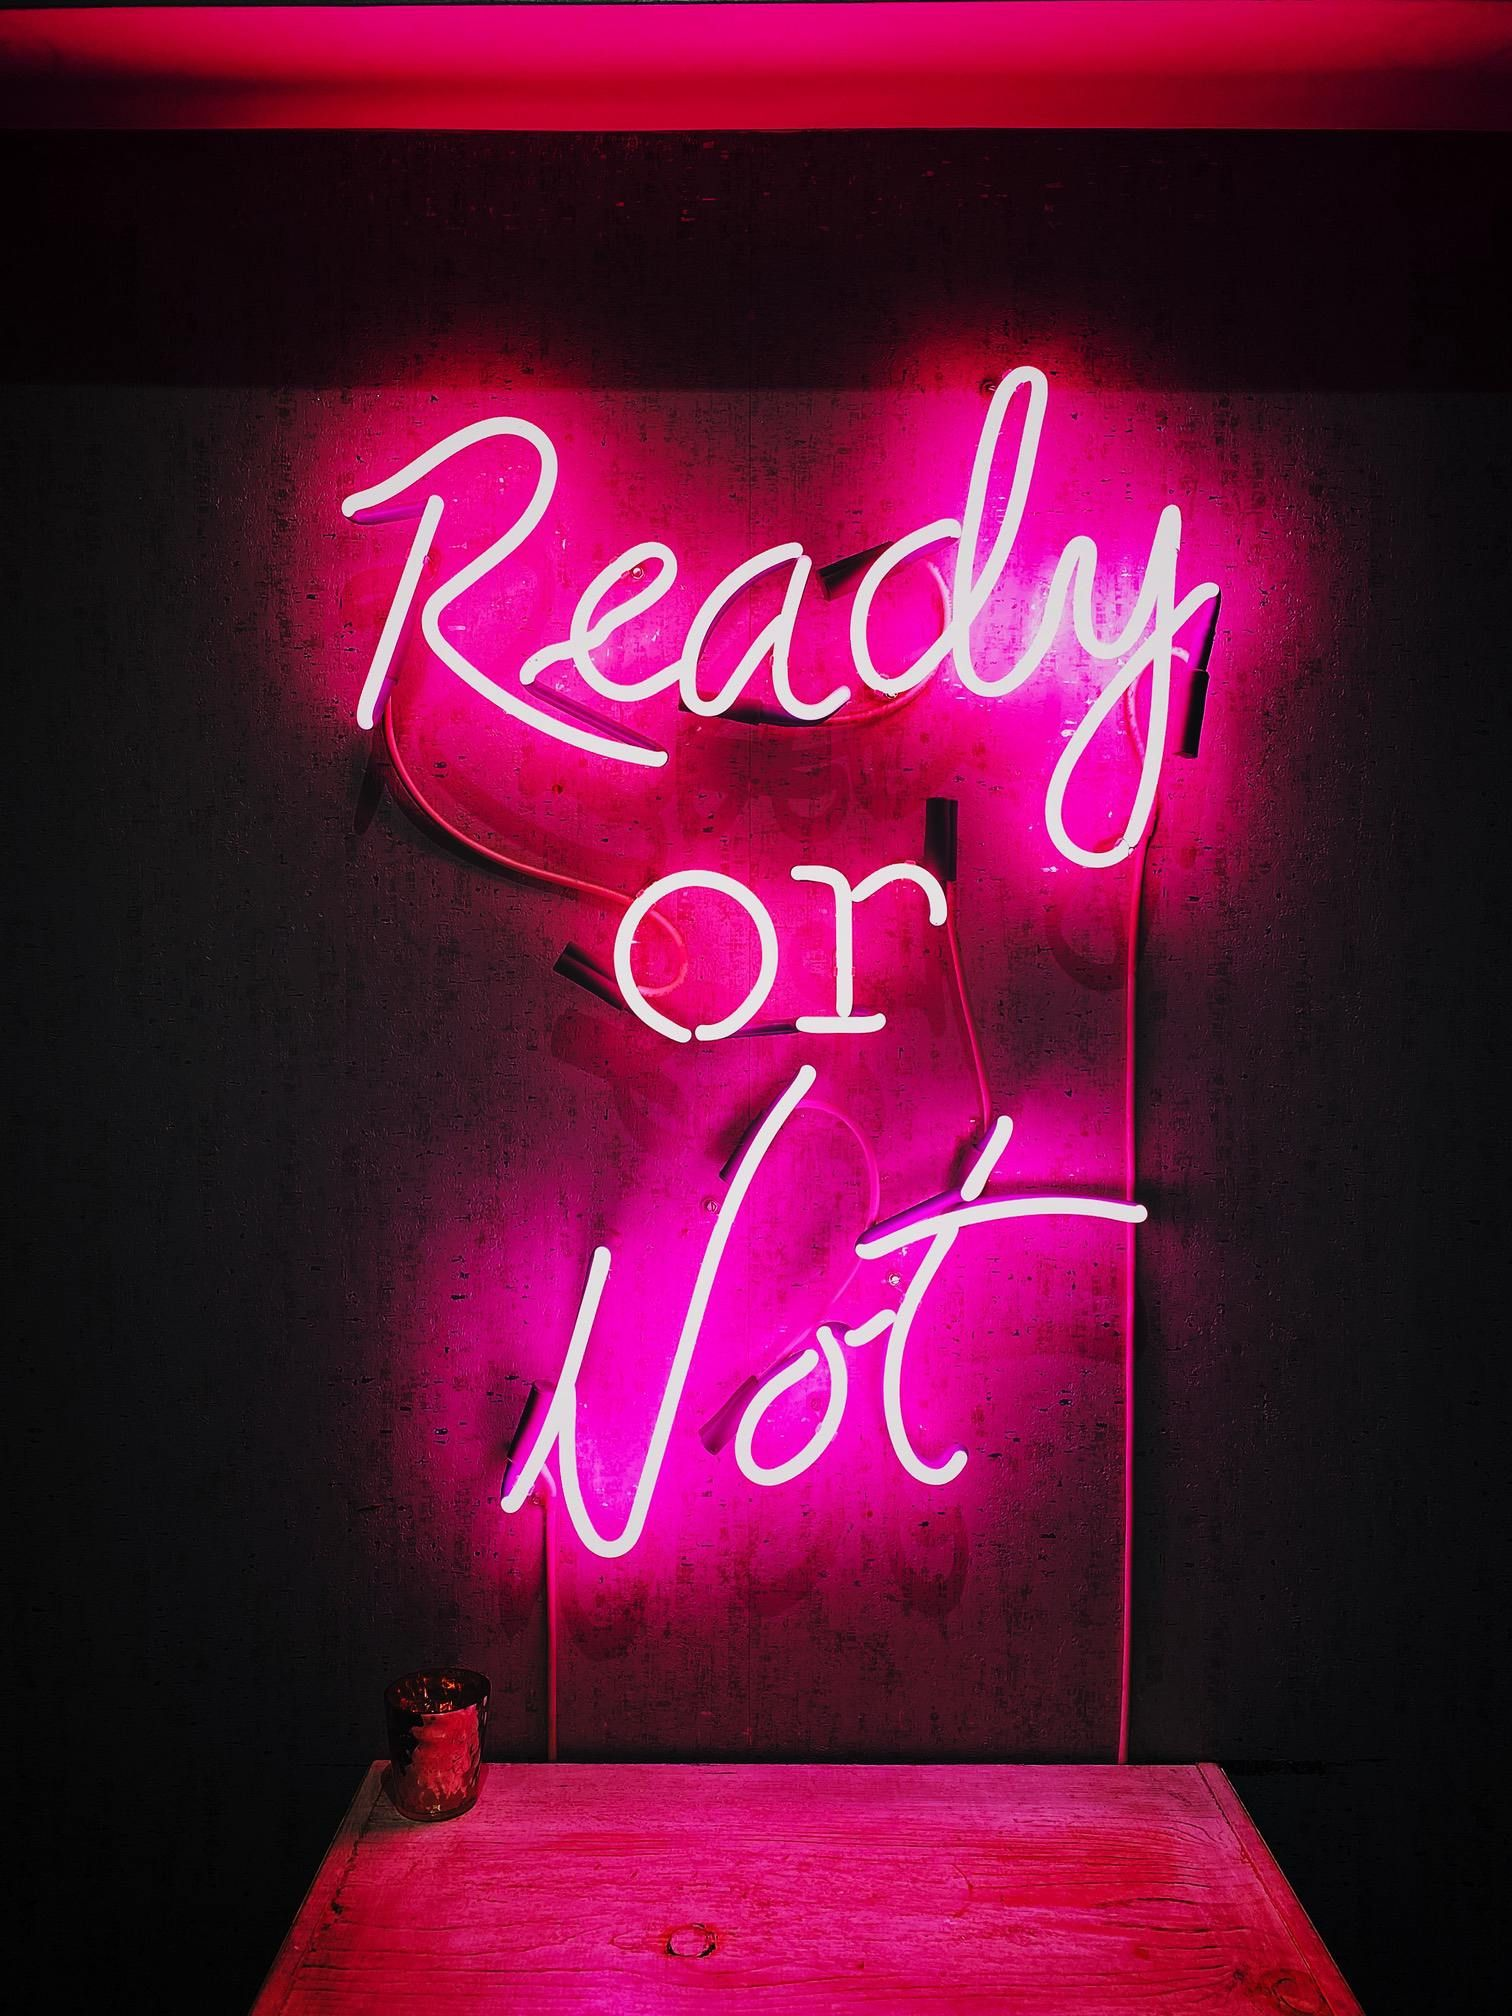 50 Free Trendy Neon Wallpapers For Iphone Hd Download In 2020 Neon Wallpaper Wallpaper Iphone Neon Neon